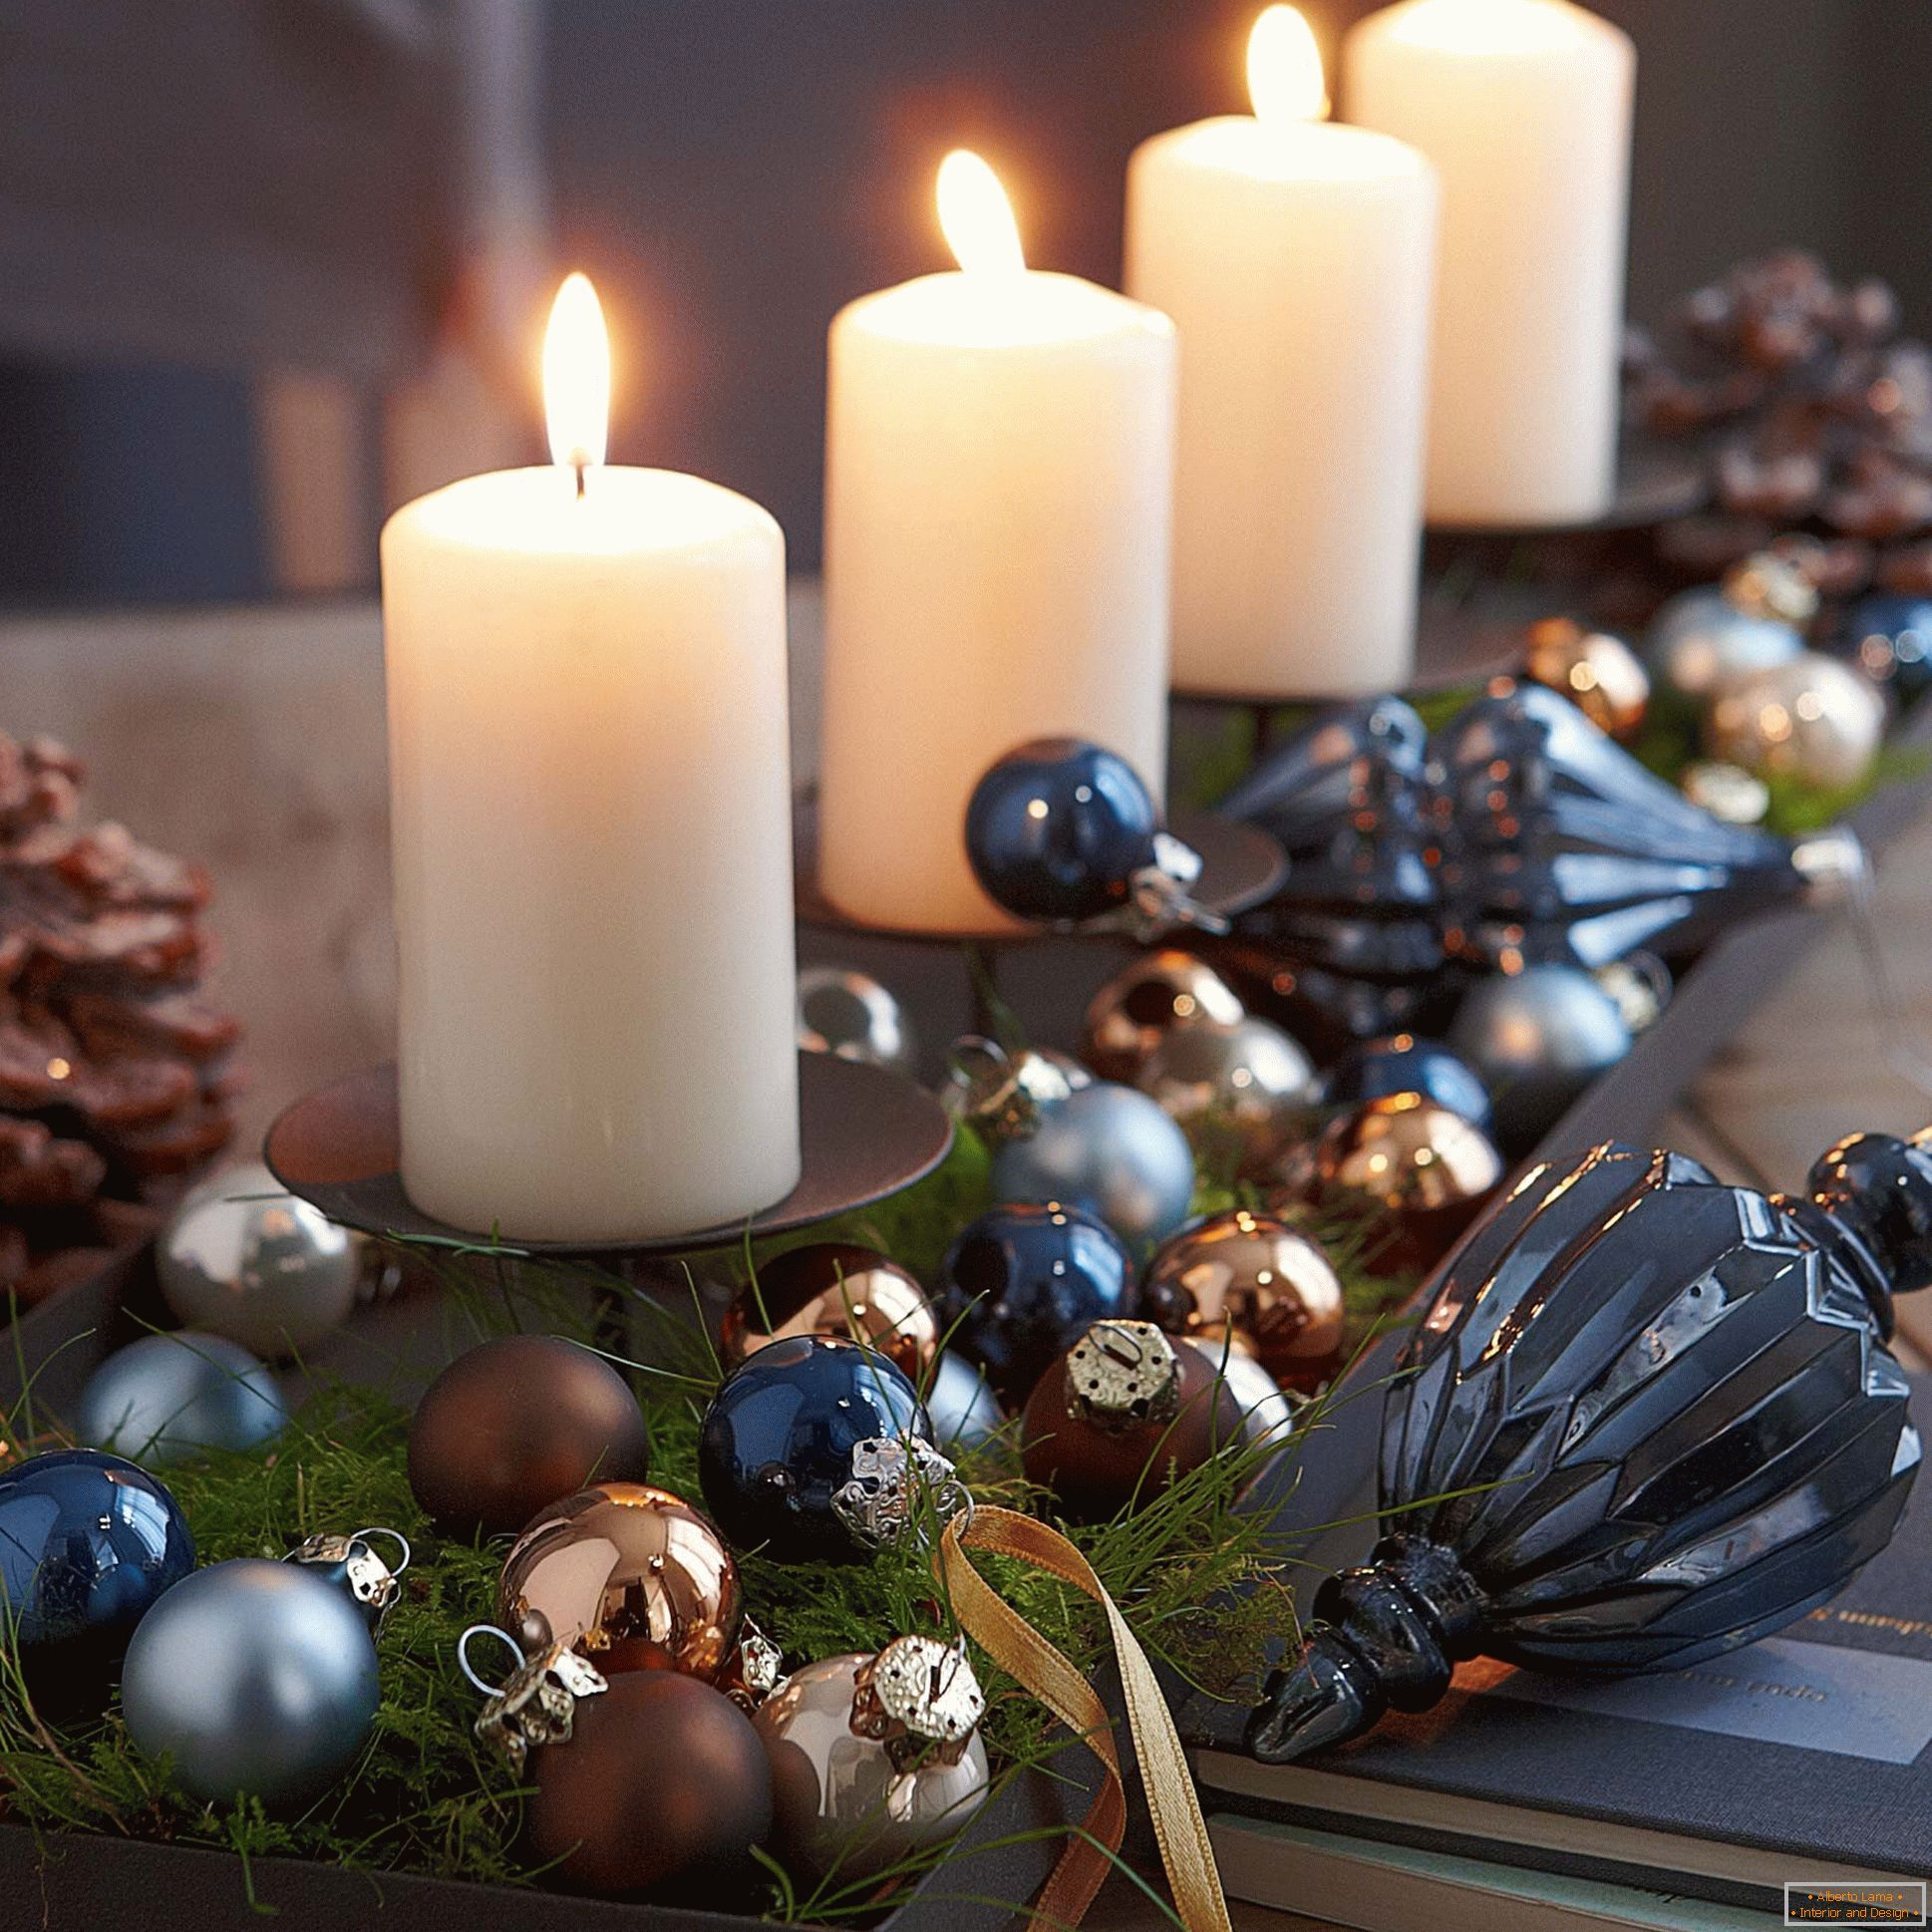 New Year composition of candles